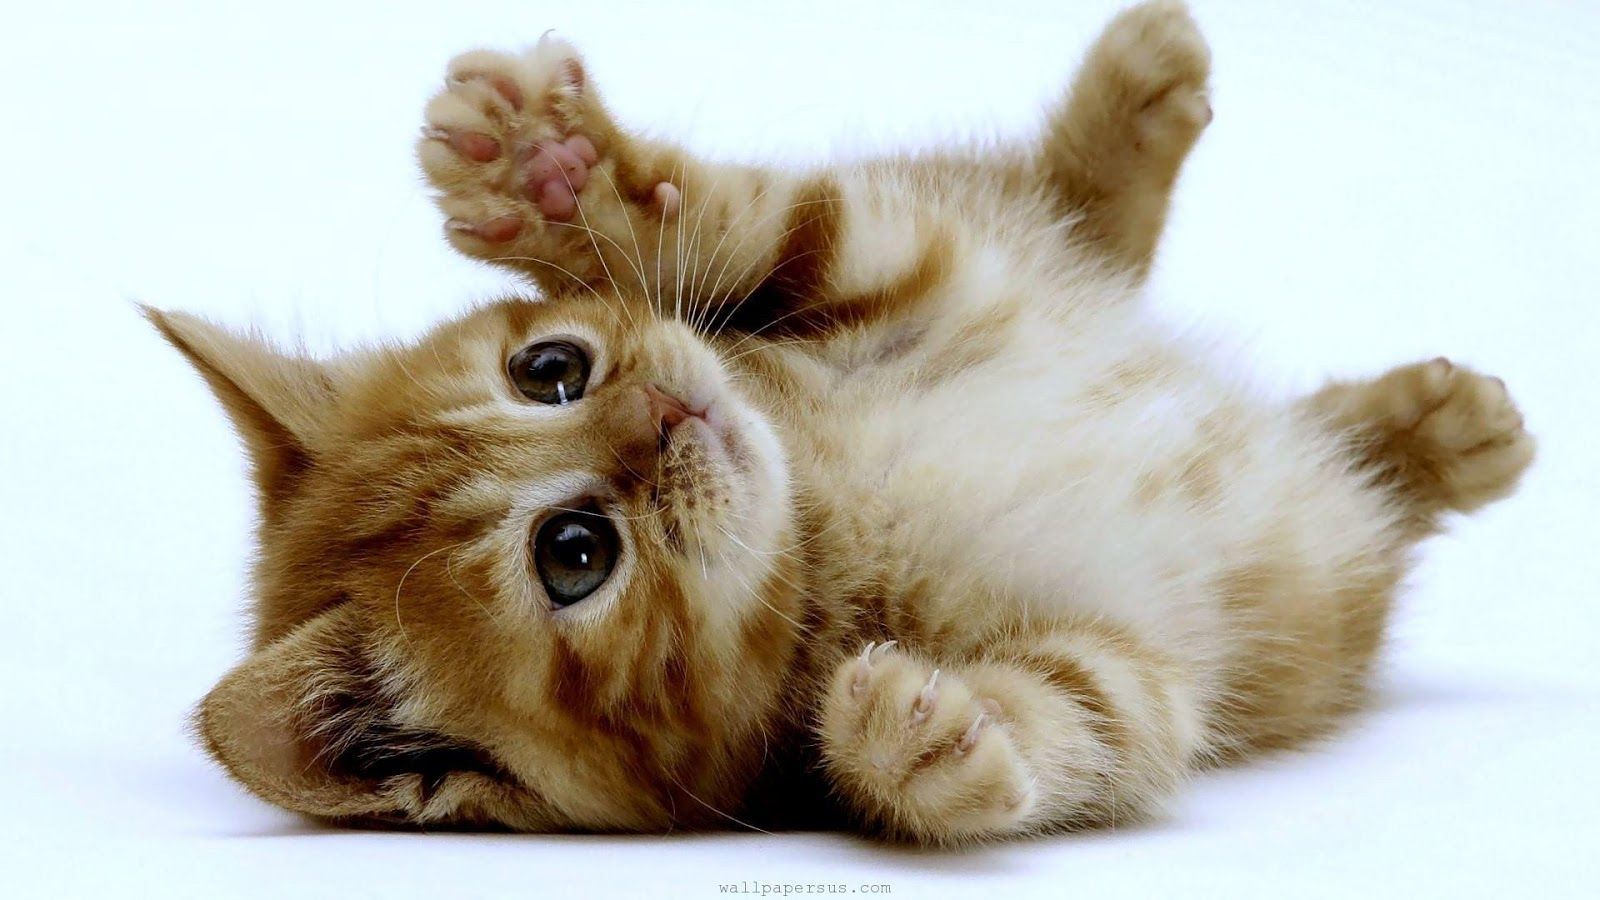 Cute kitten wallpapers hd android apps on google play adorable cute kitten wallpapers hd android apps on google play thecheapjerseys Gallery